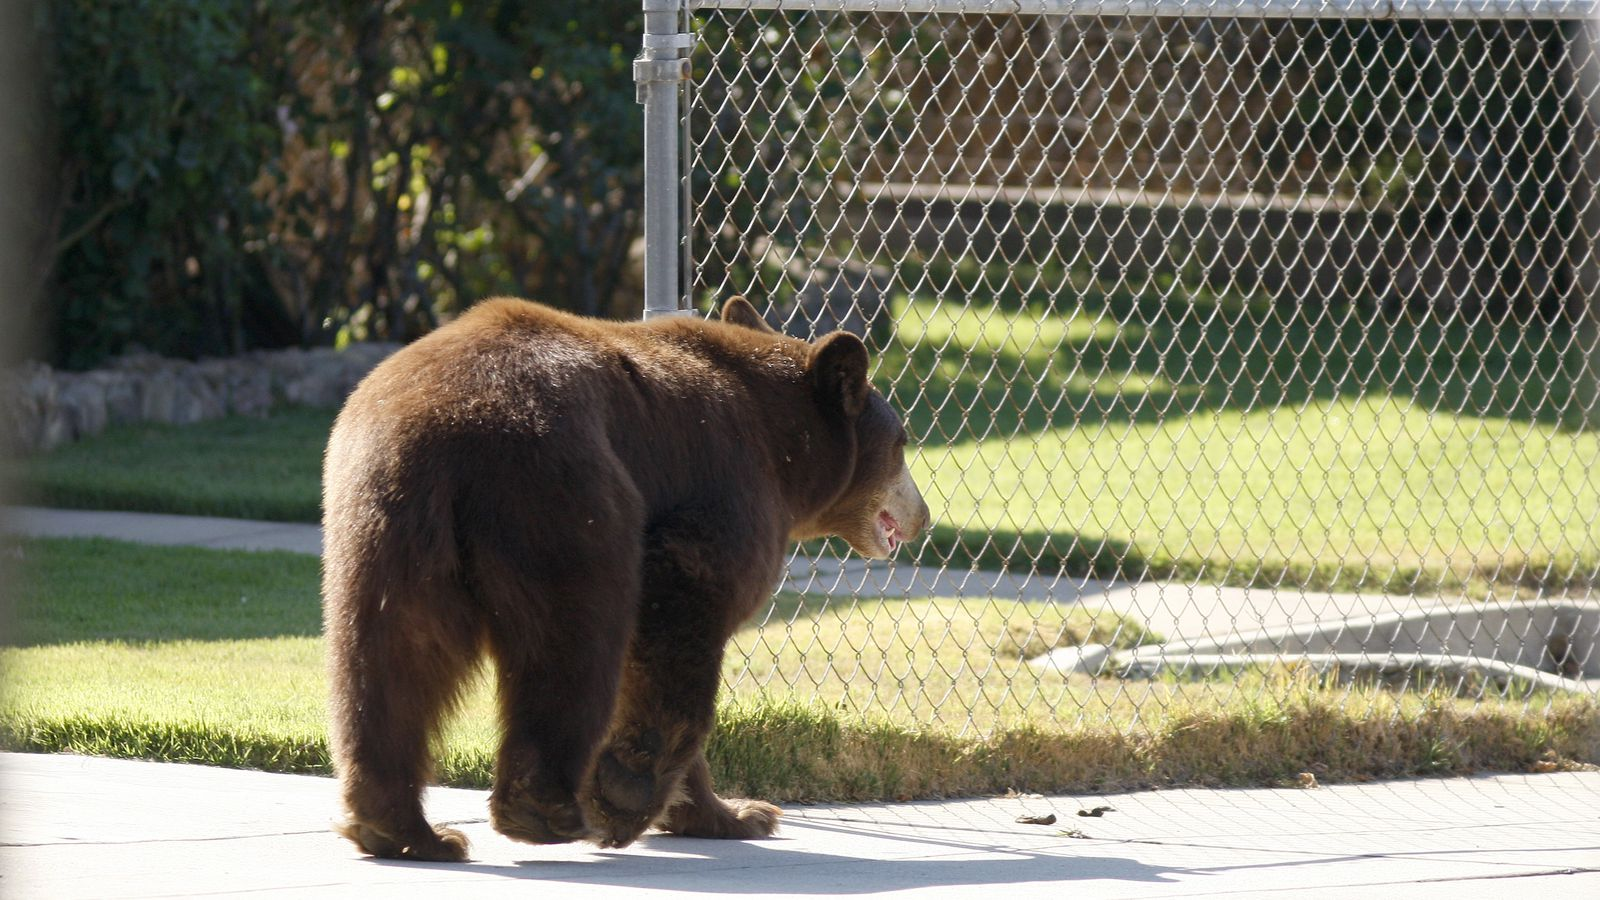 watch woman yell u0027bear don u0027t eat my kayak u0027 as bear eats kayak